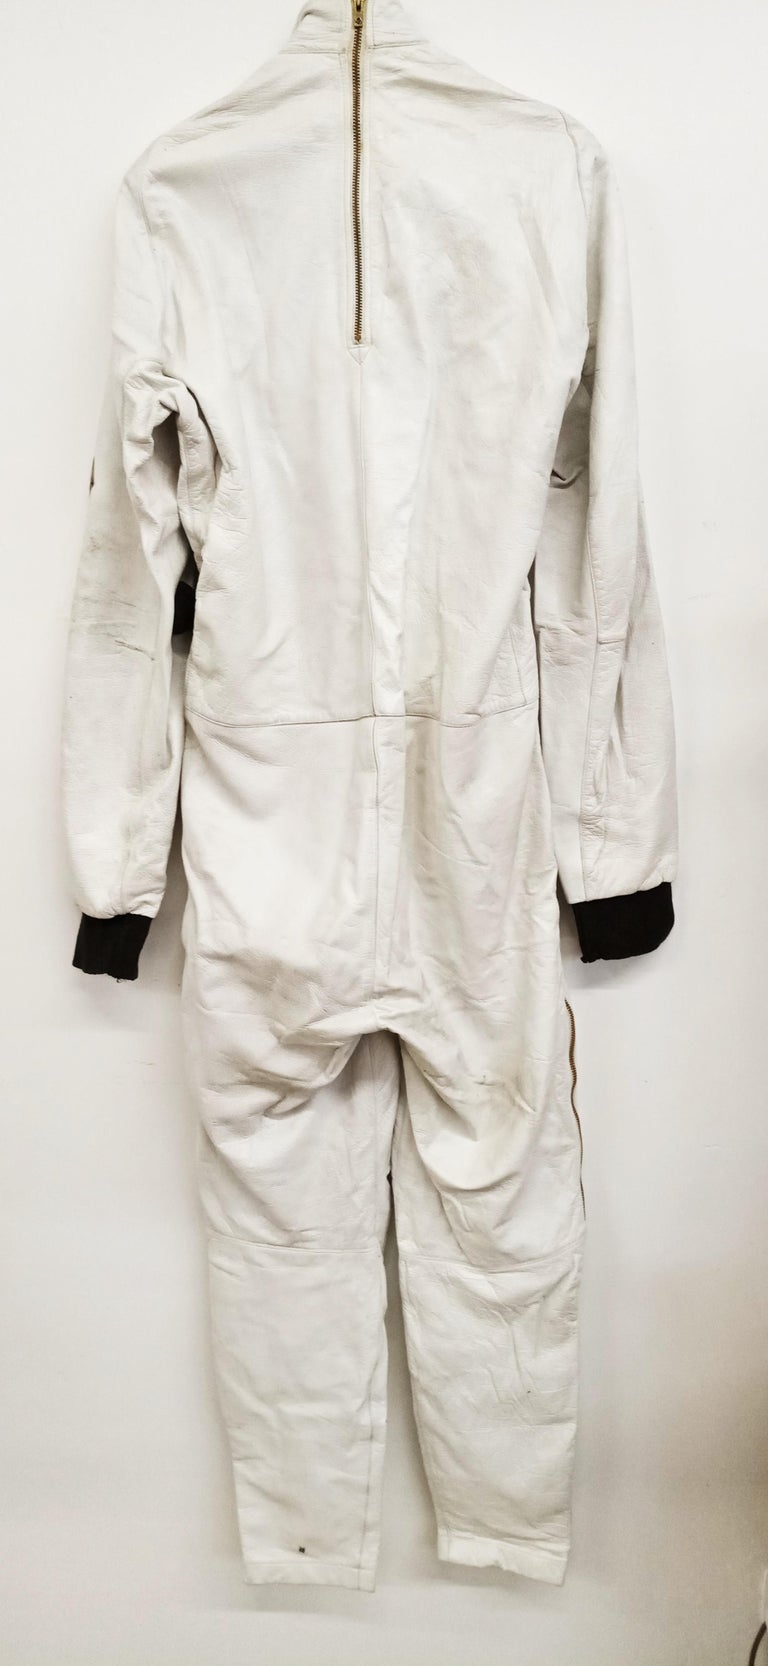 French leather stratospheric pilot suit SGP Type 21 (Mirage III), circa 1962. In perfect vintage condition.